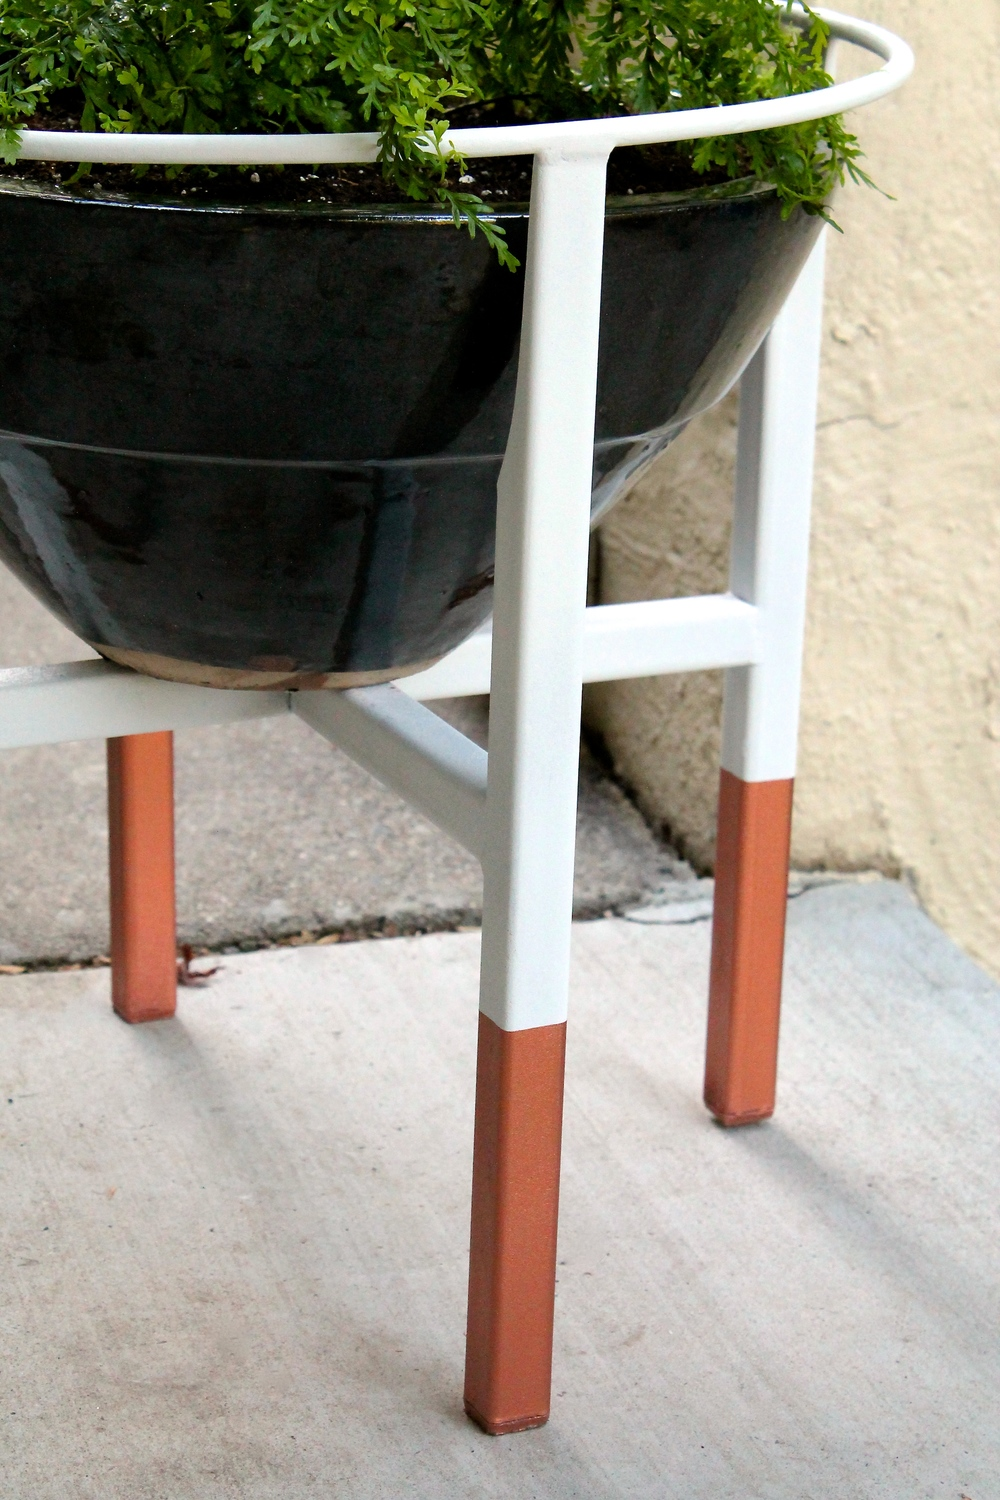 plant-stand-copper-legs-metal